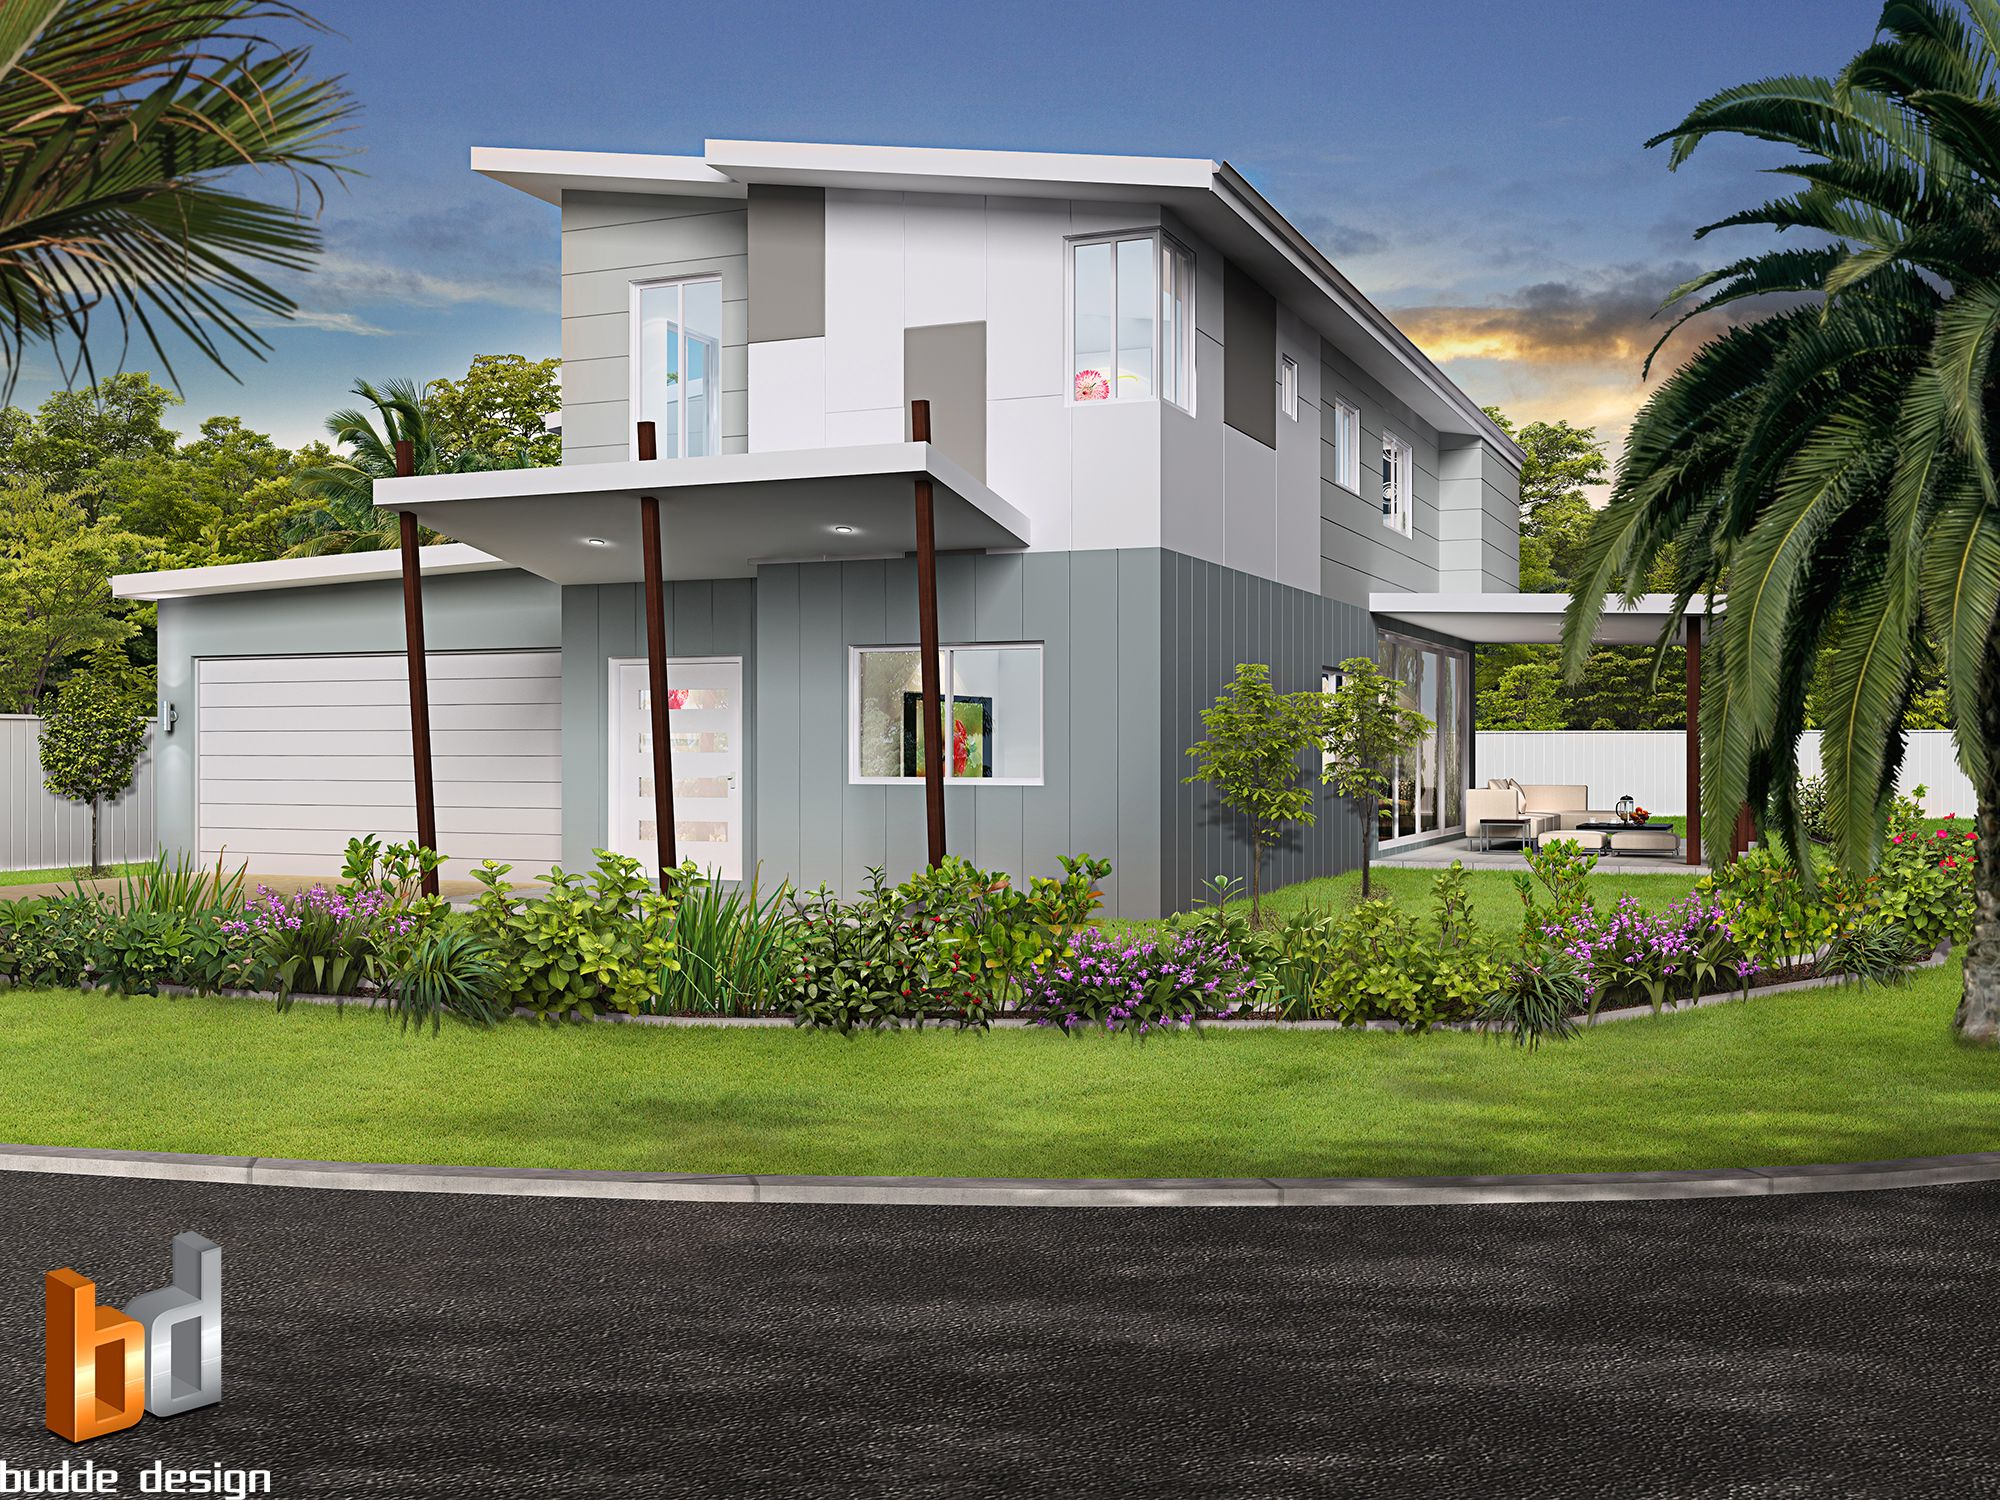 Australia s Leading 3D Architectural Visualisation and Rendering pany specialising in 3D Architectural Visualisation 3D Architectural